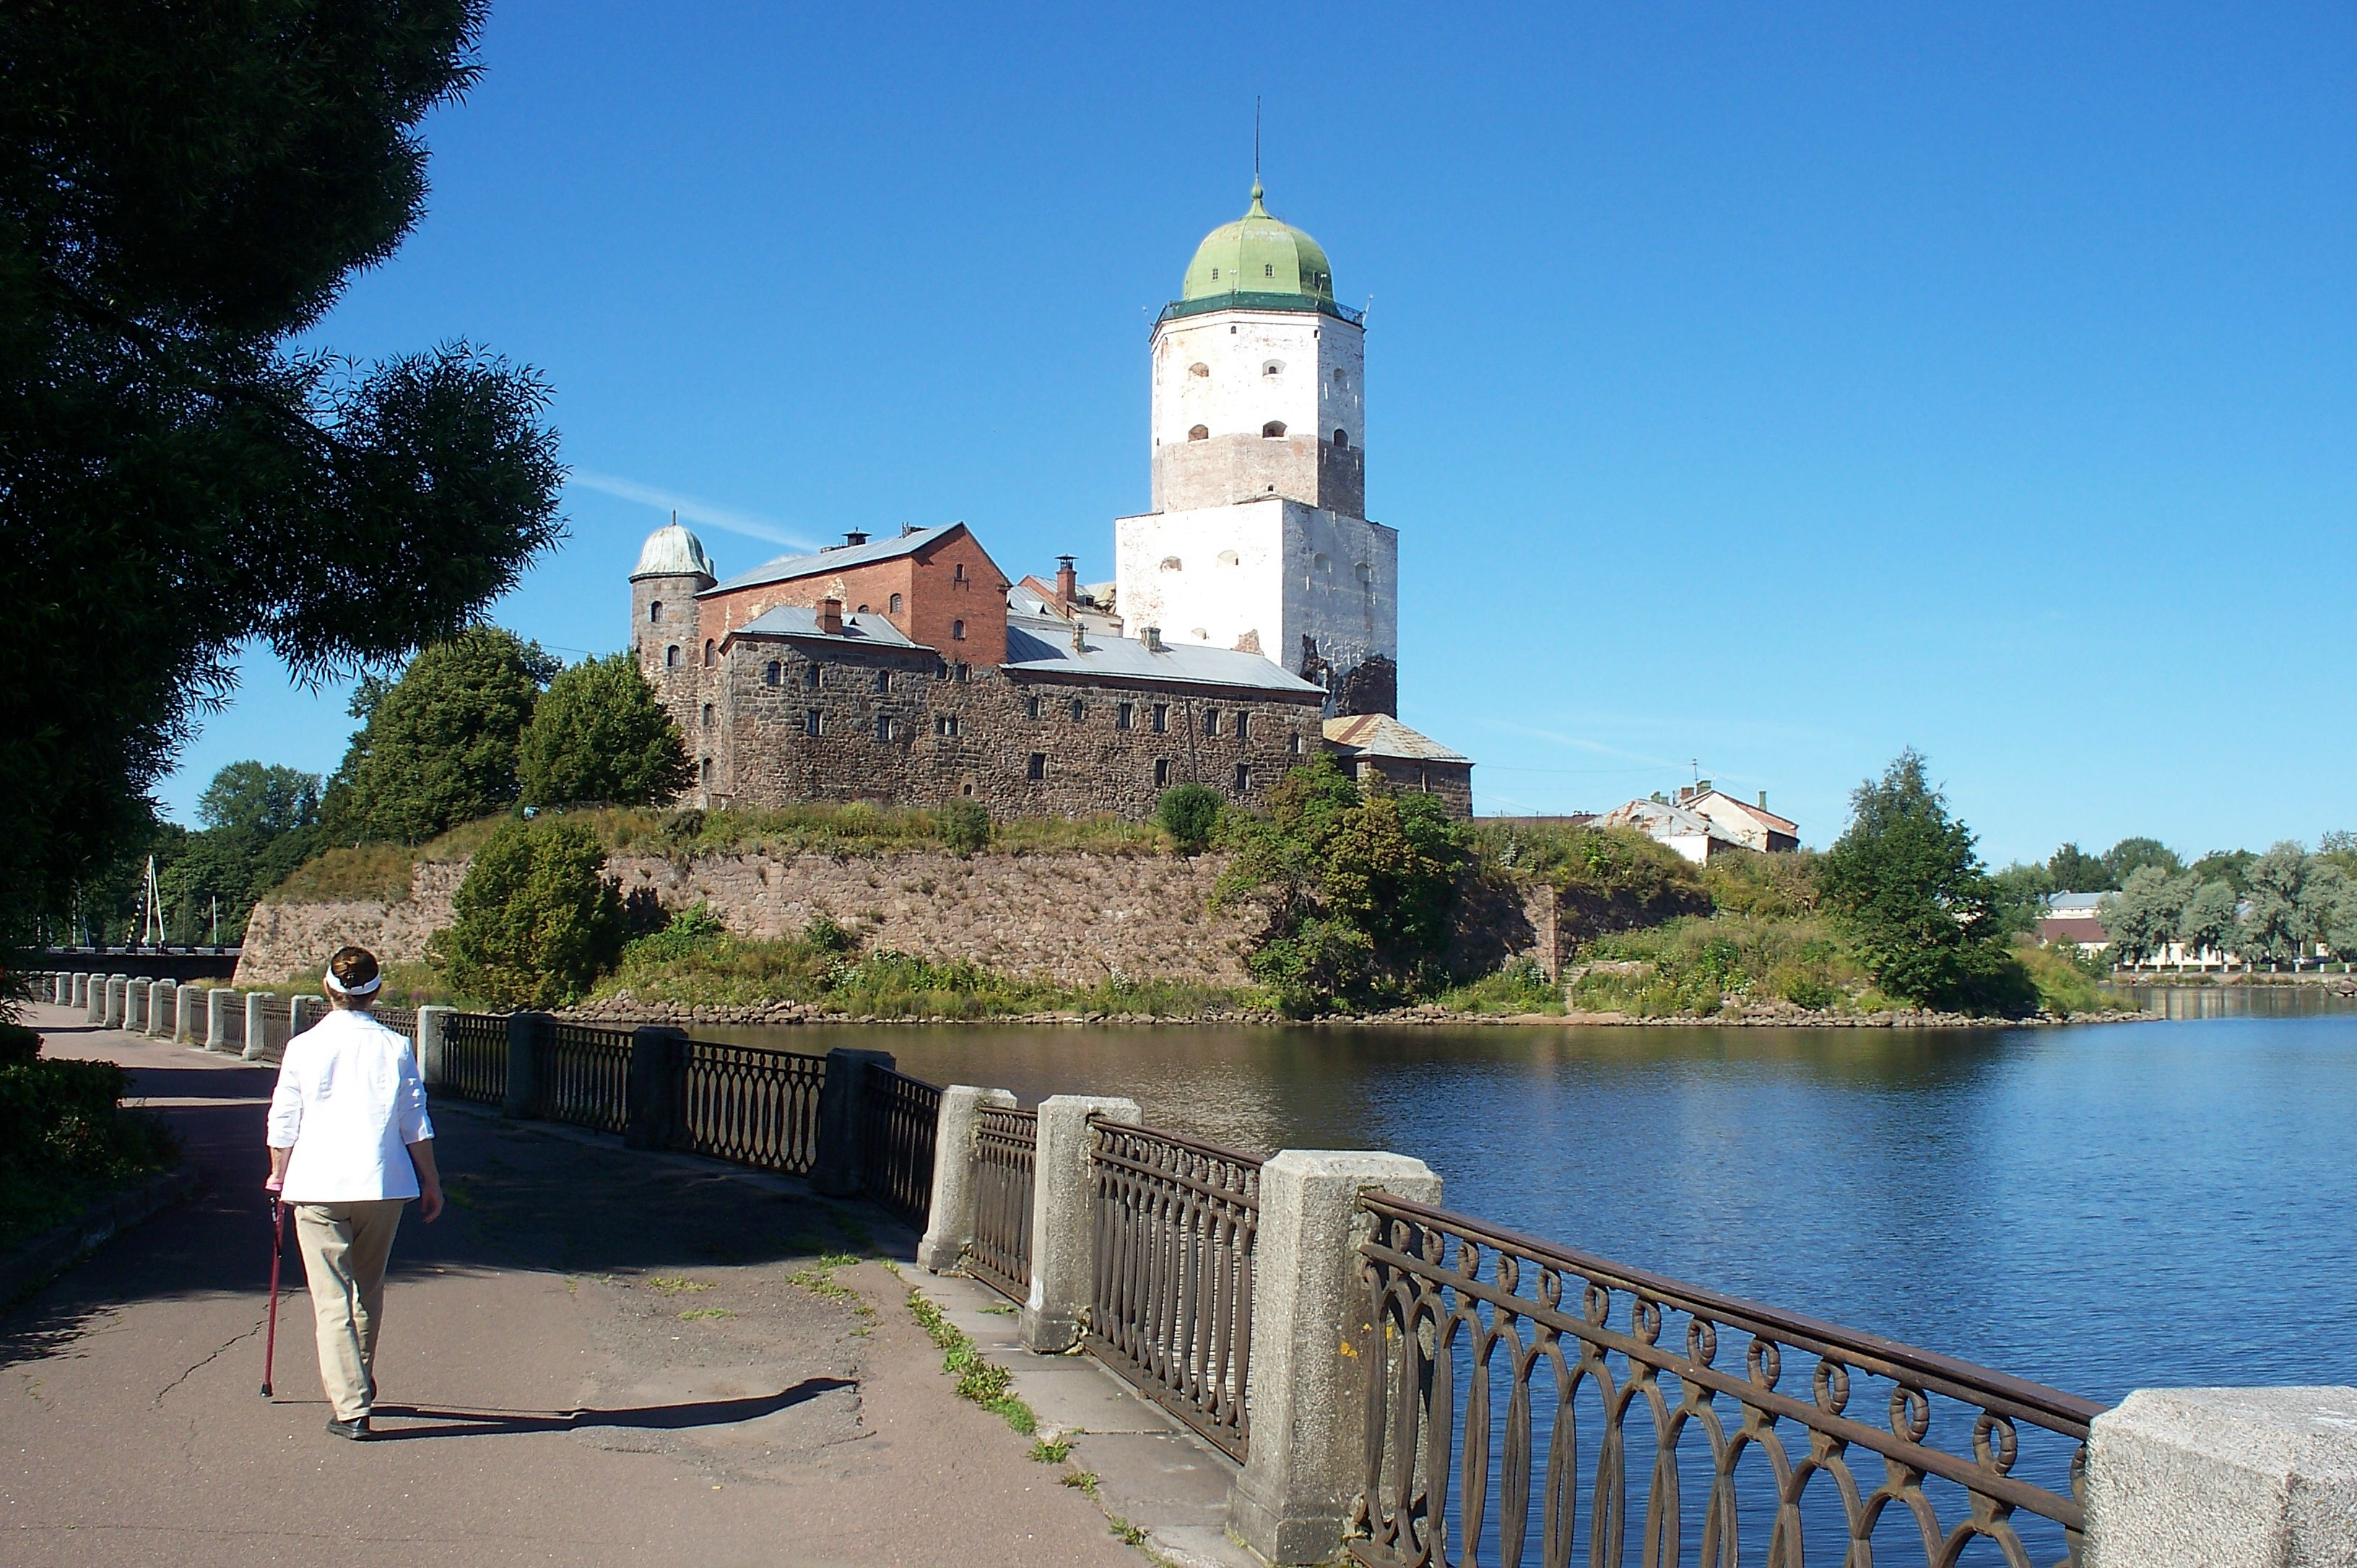 Since 1293, Vyborg Castle has protected its city from Baltic raiders.